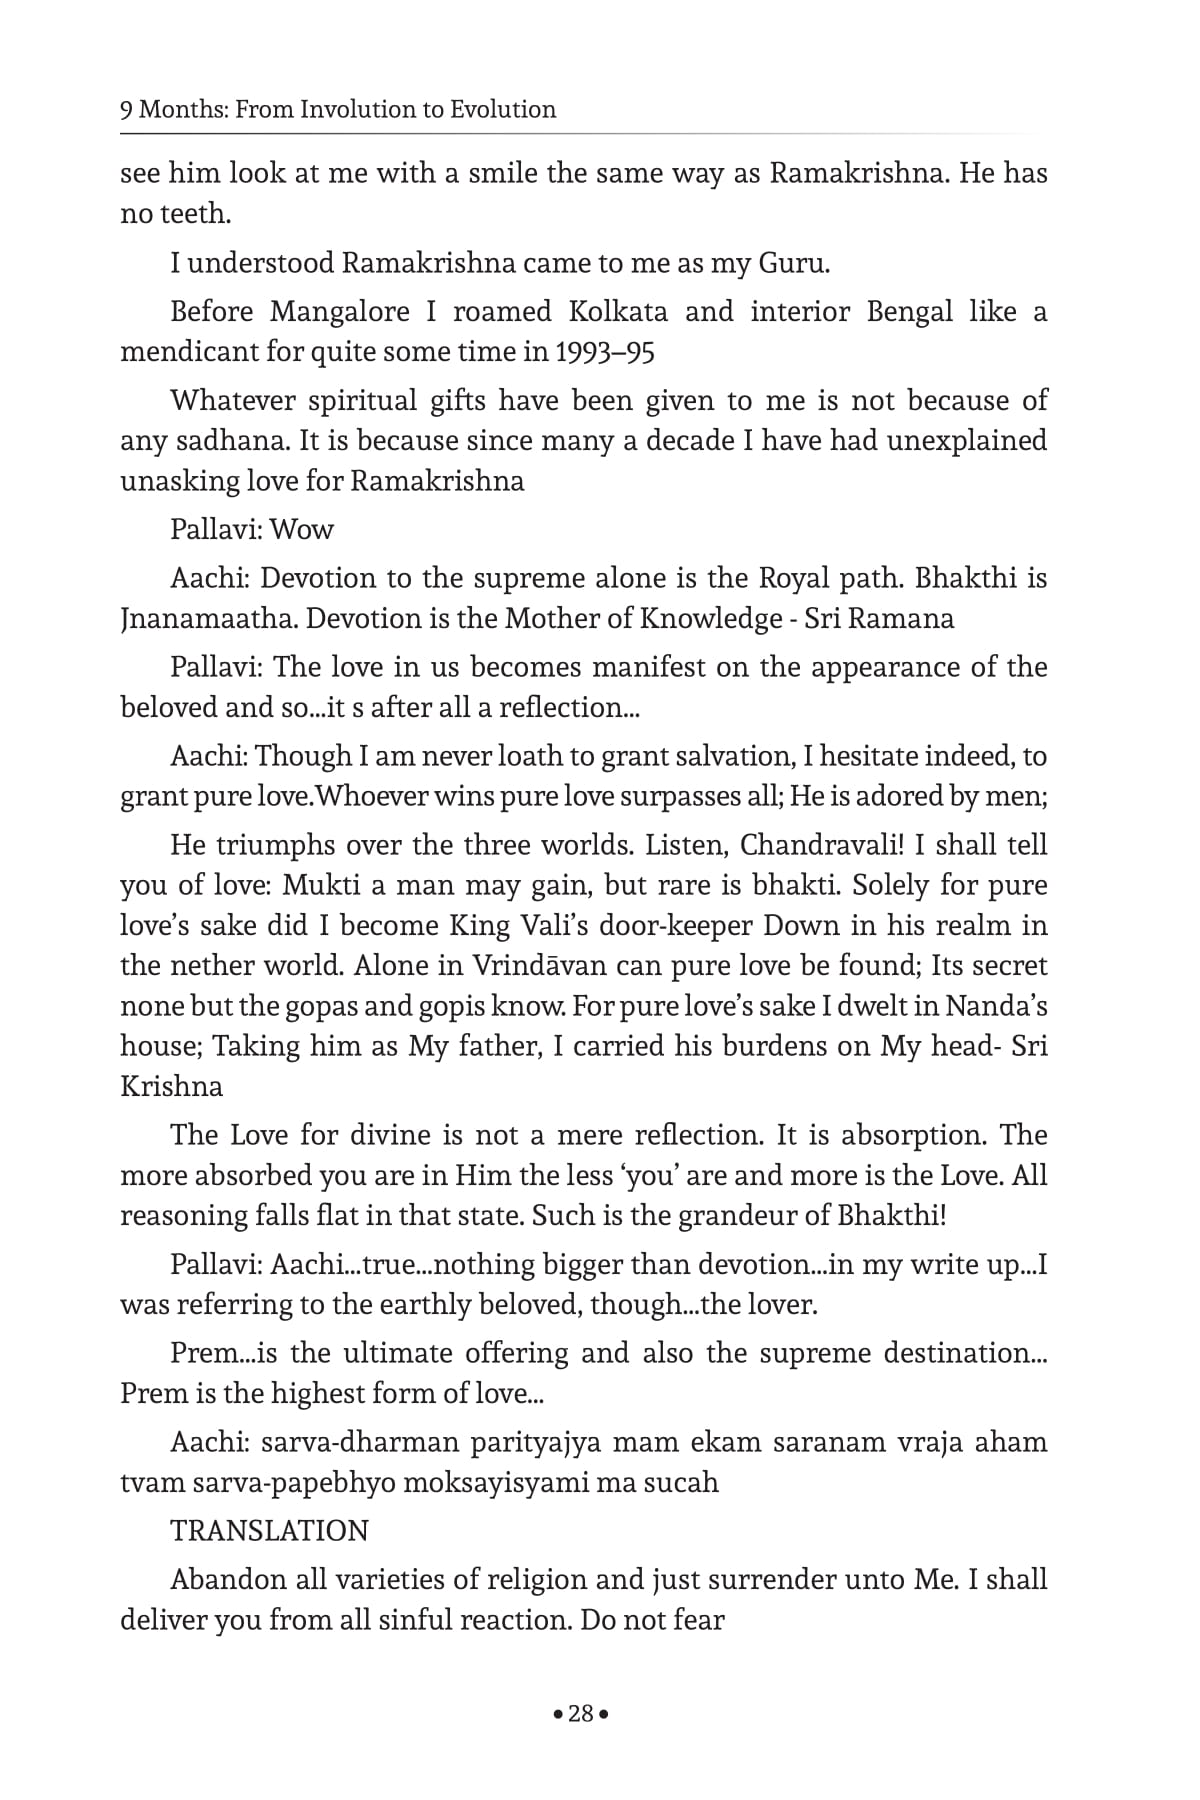 9-Months-From-Involution-to-Evolution-Book-By-Dr-Pallavi-Kwatra-054.jpg